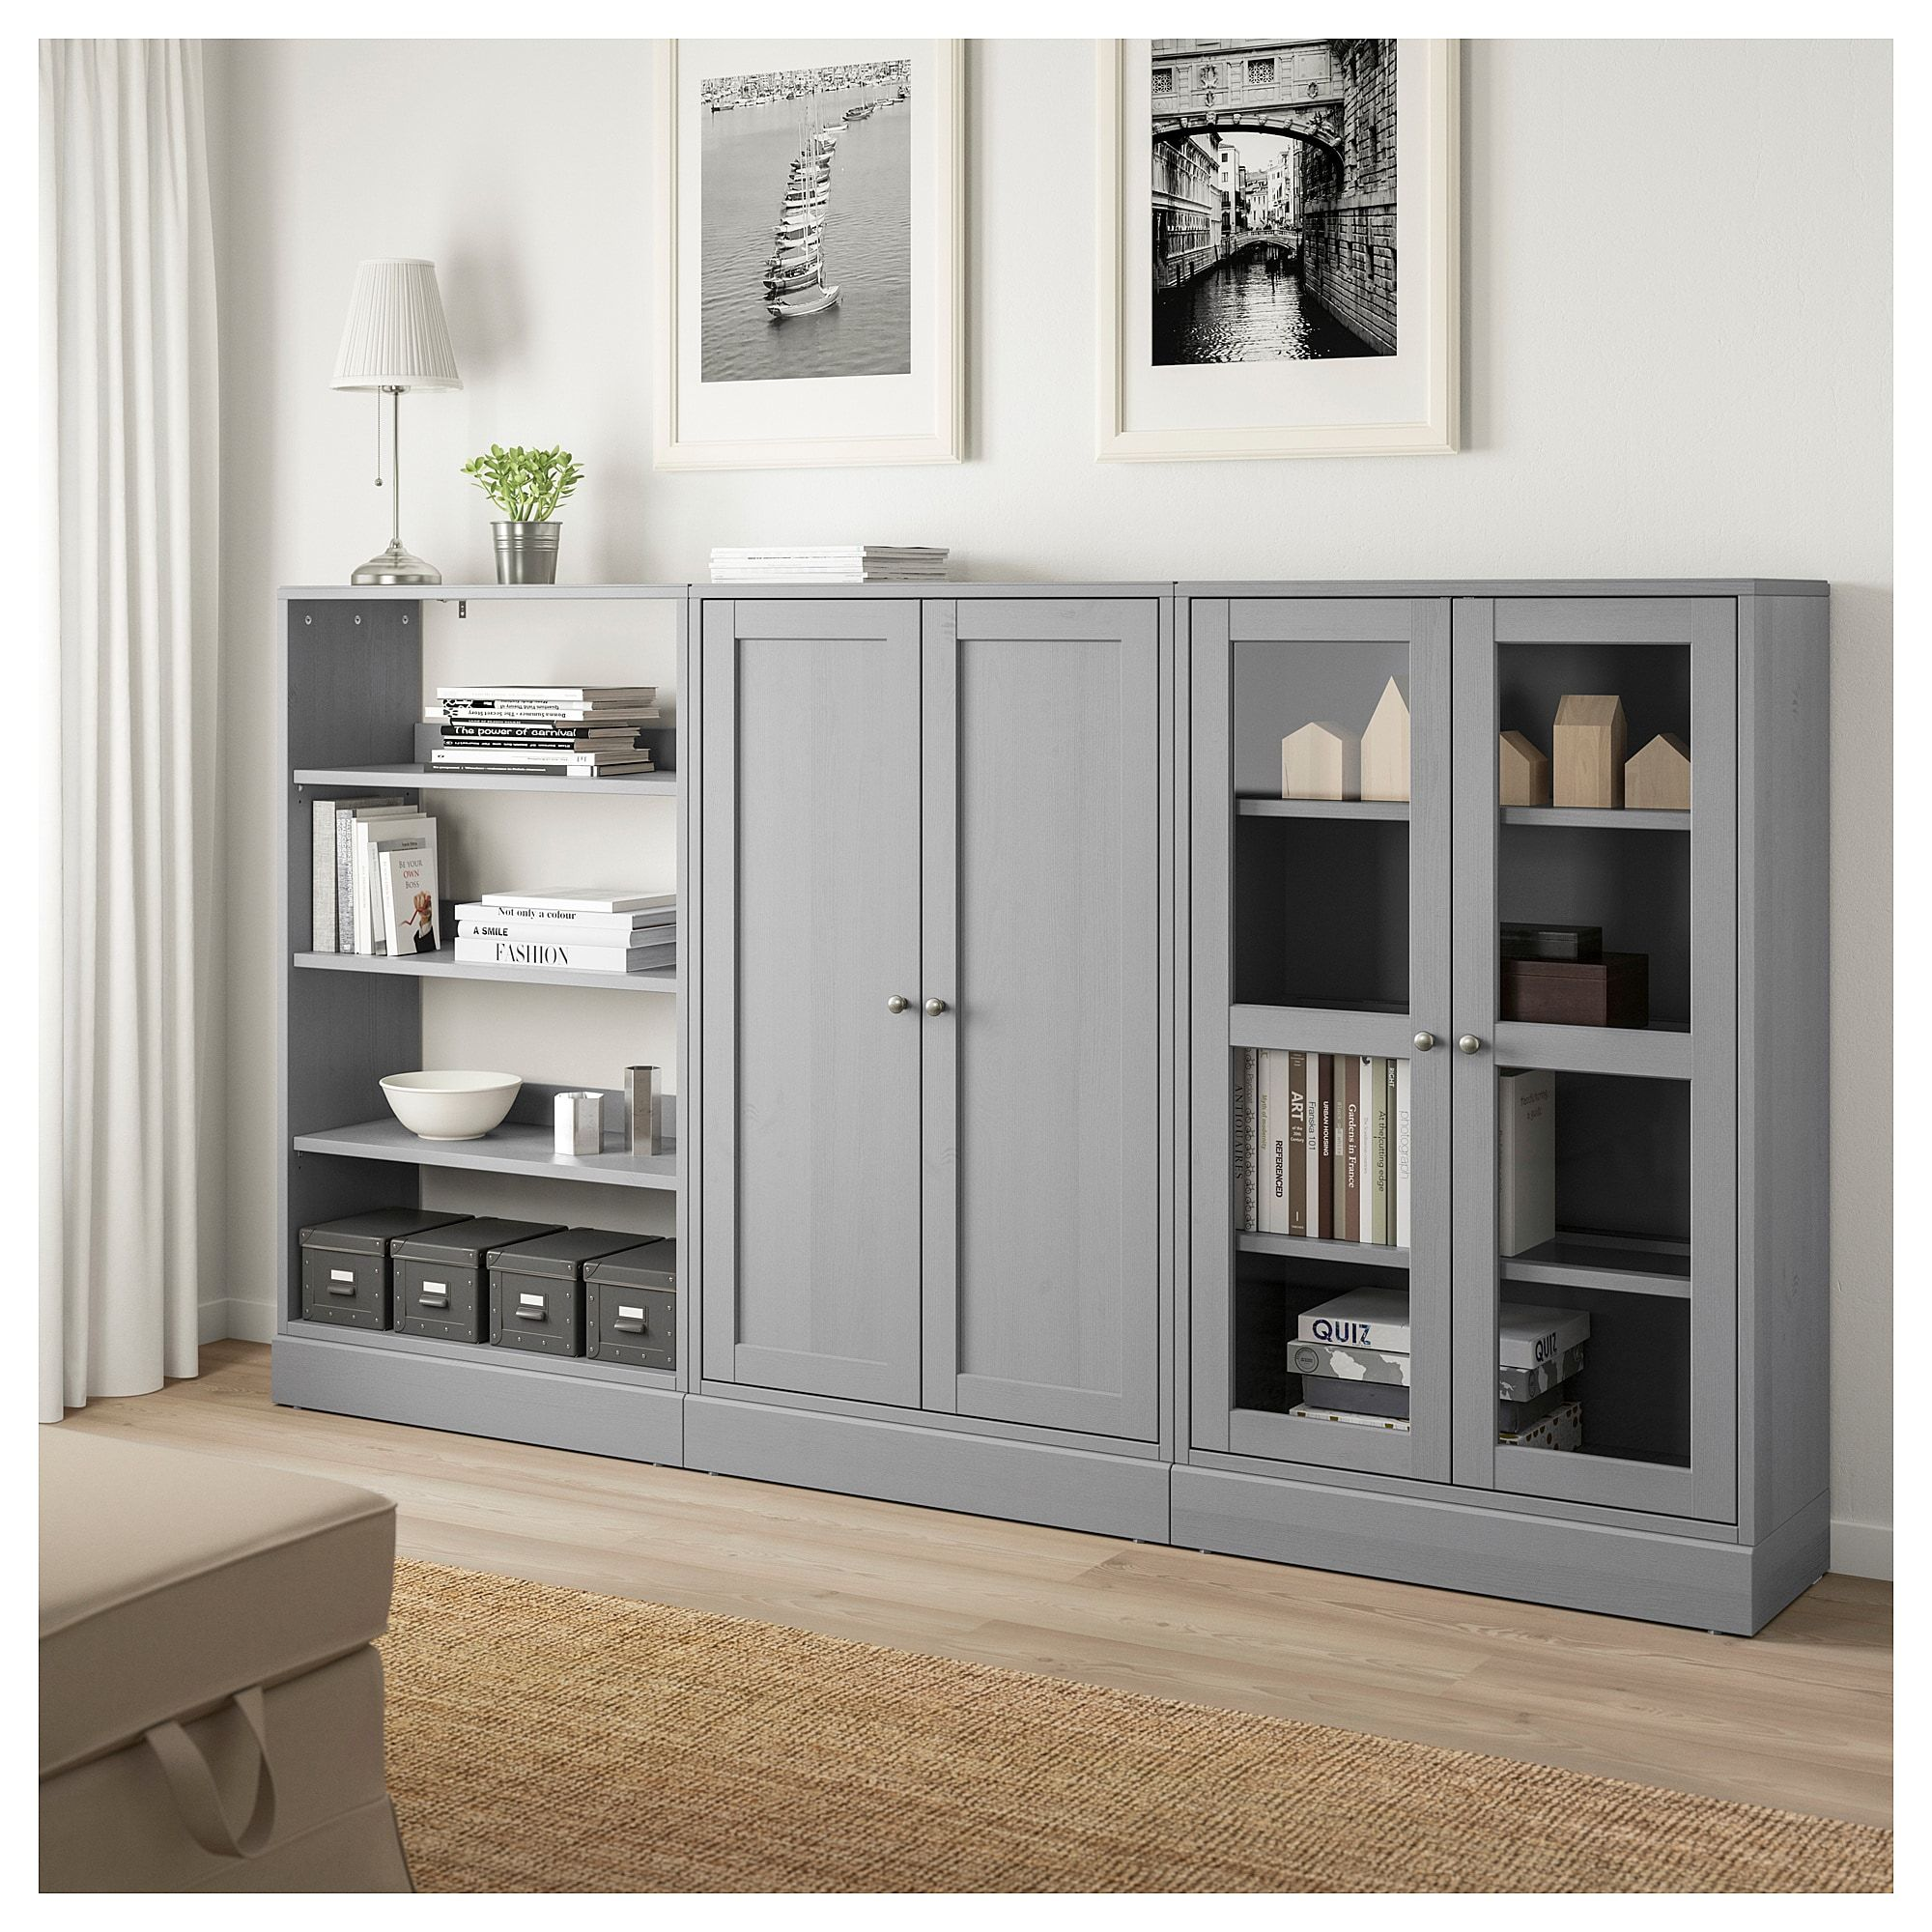 Havsta Storage Combination W Glass Doors Gray In 2019 Mood Board